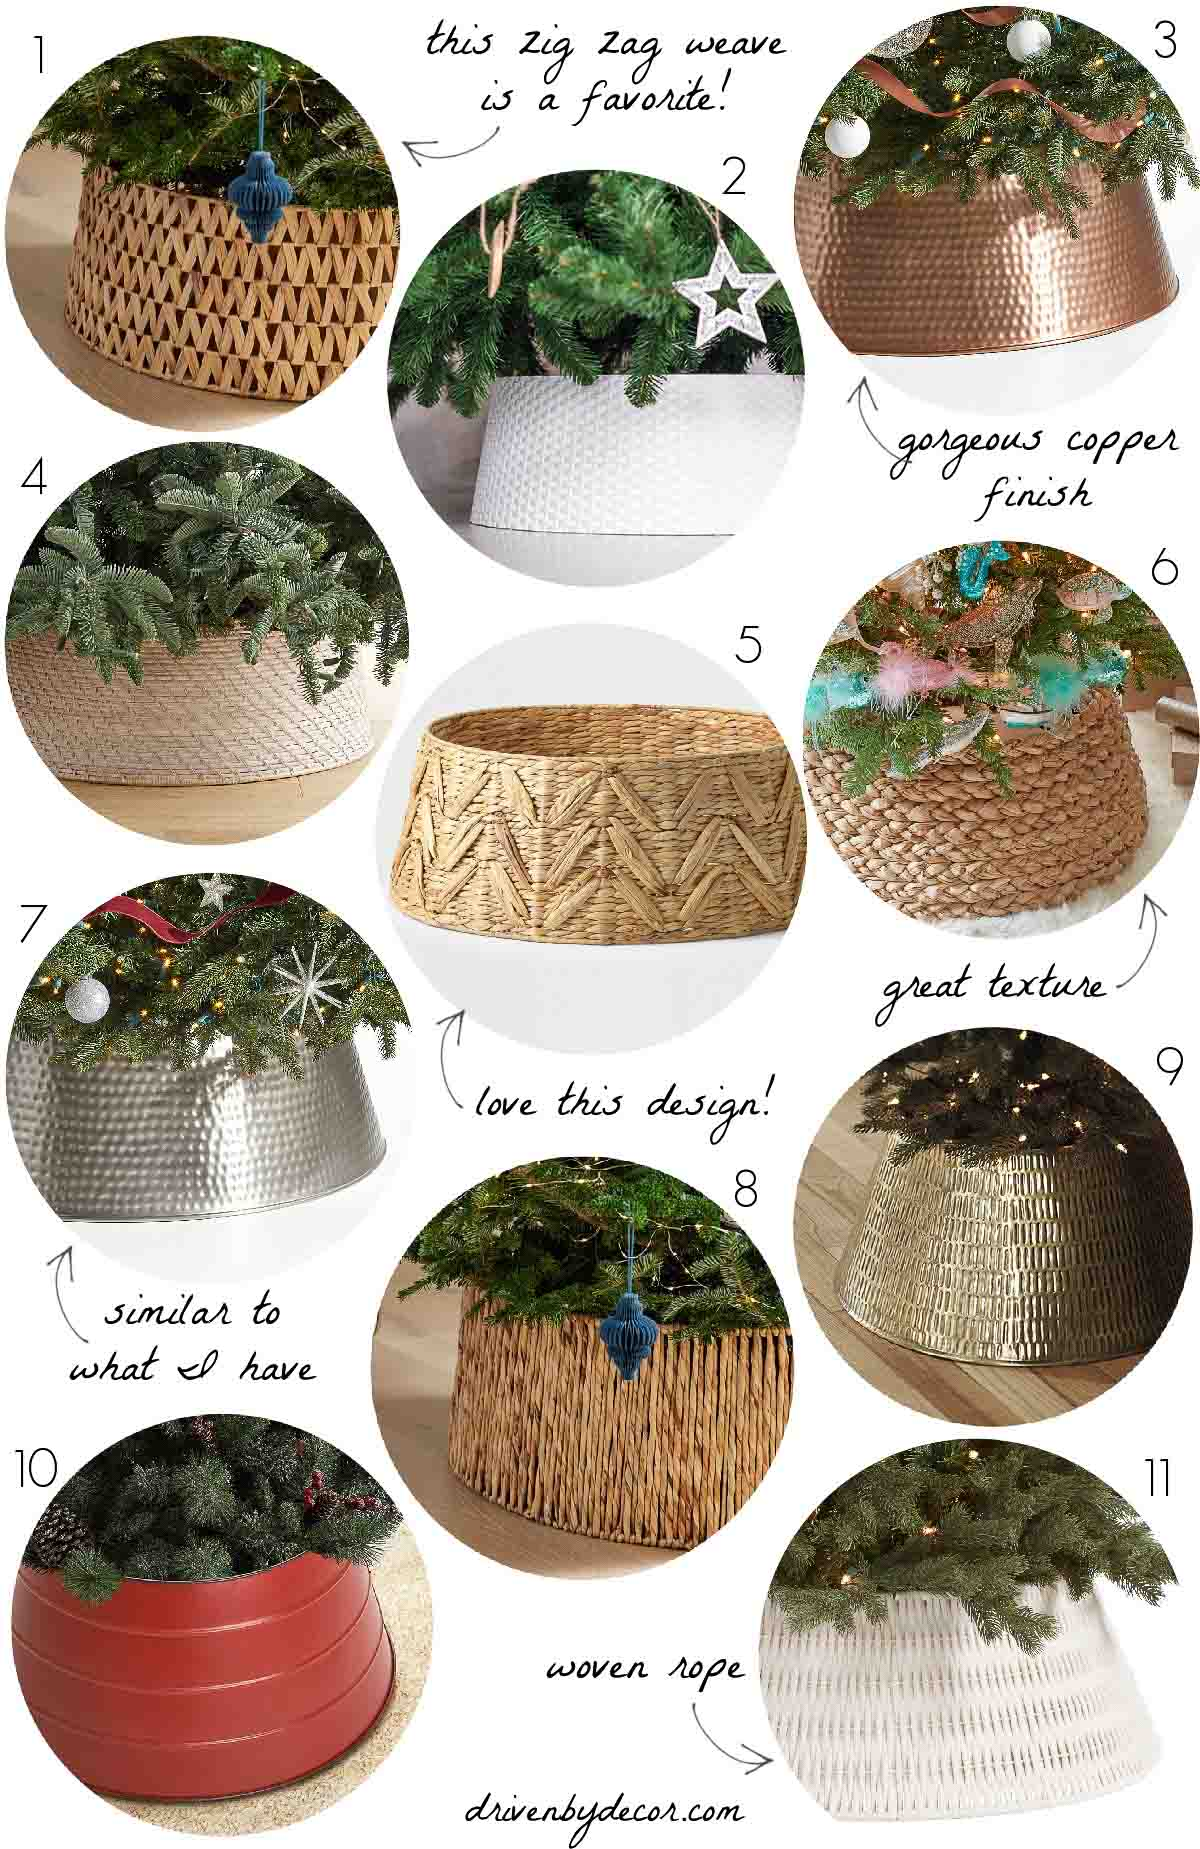 Christmas tree collars - love using these instead of tree skirts!